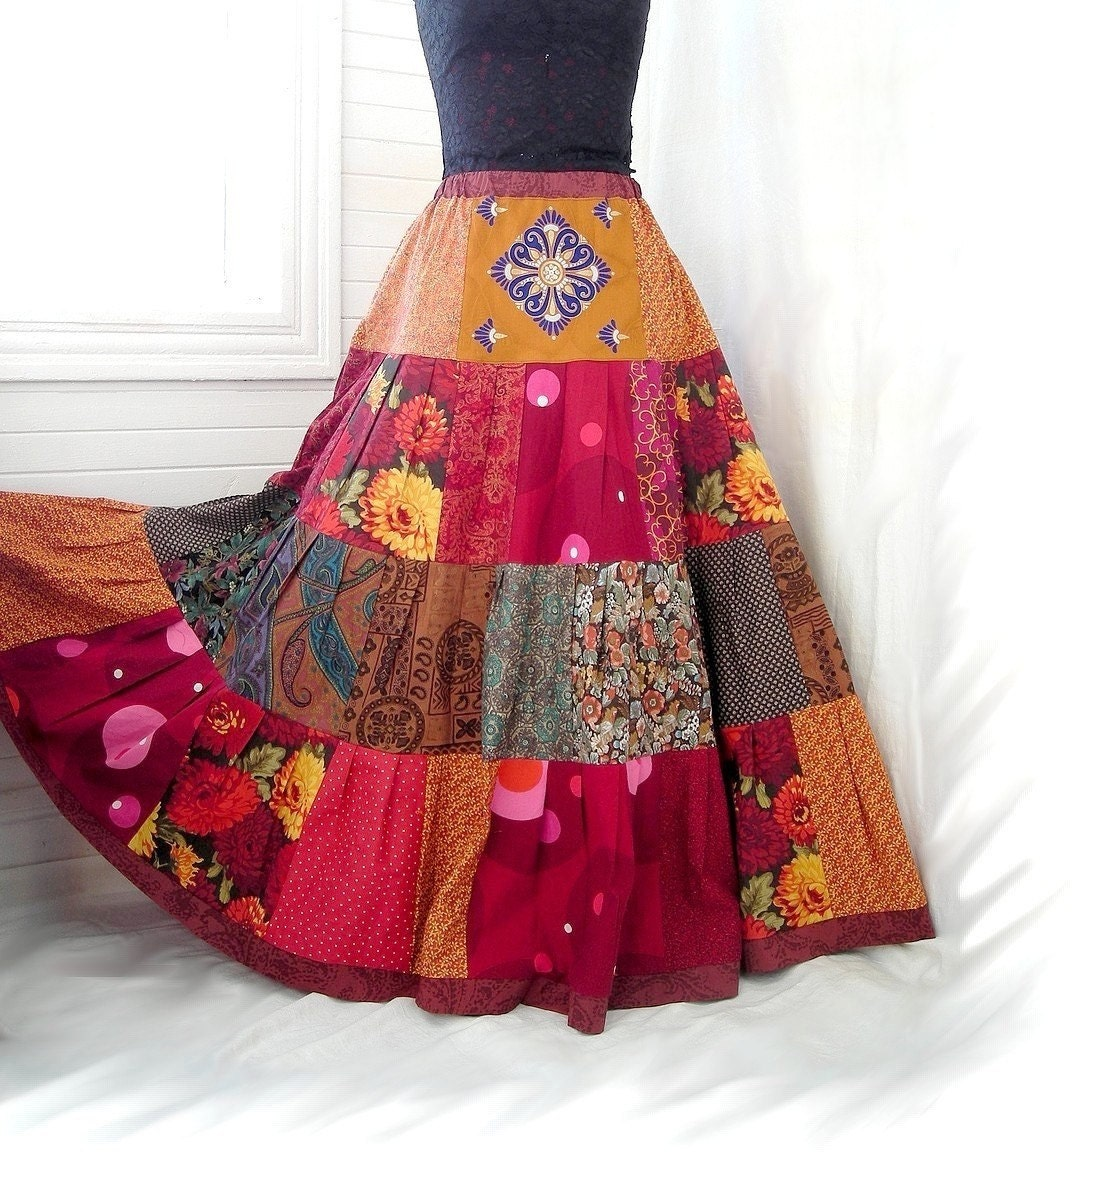 Red Fire Blossoms - Floral Patchwork Boho Gypsy Skirt, 19-foot hem, Sizes - S, M, L, XL